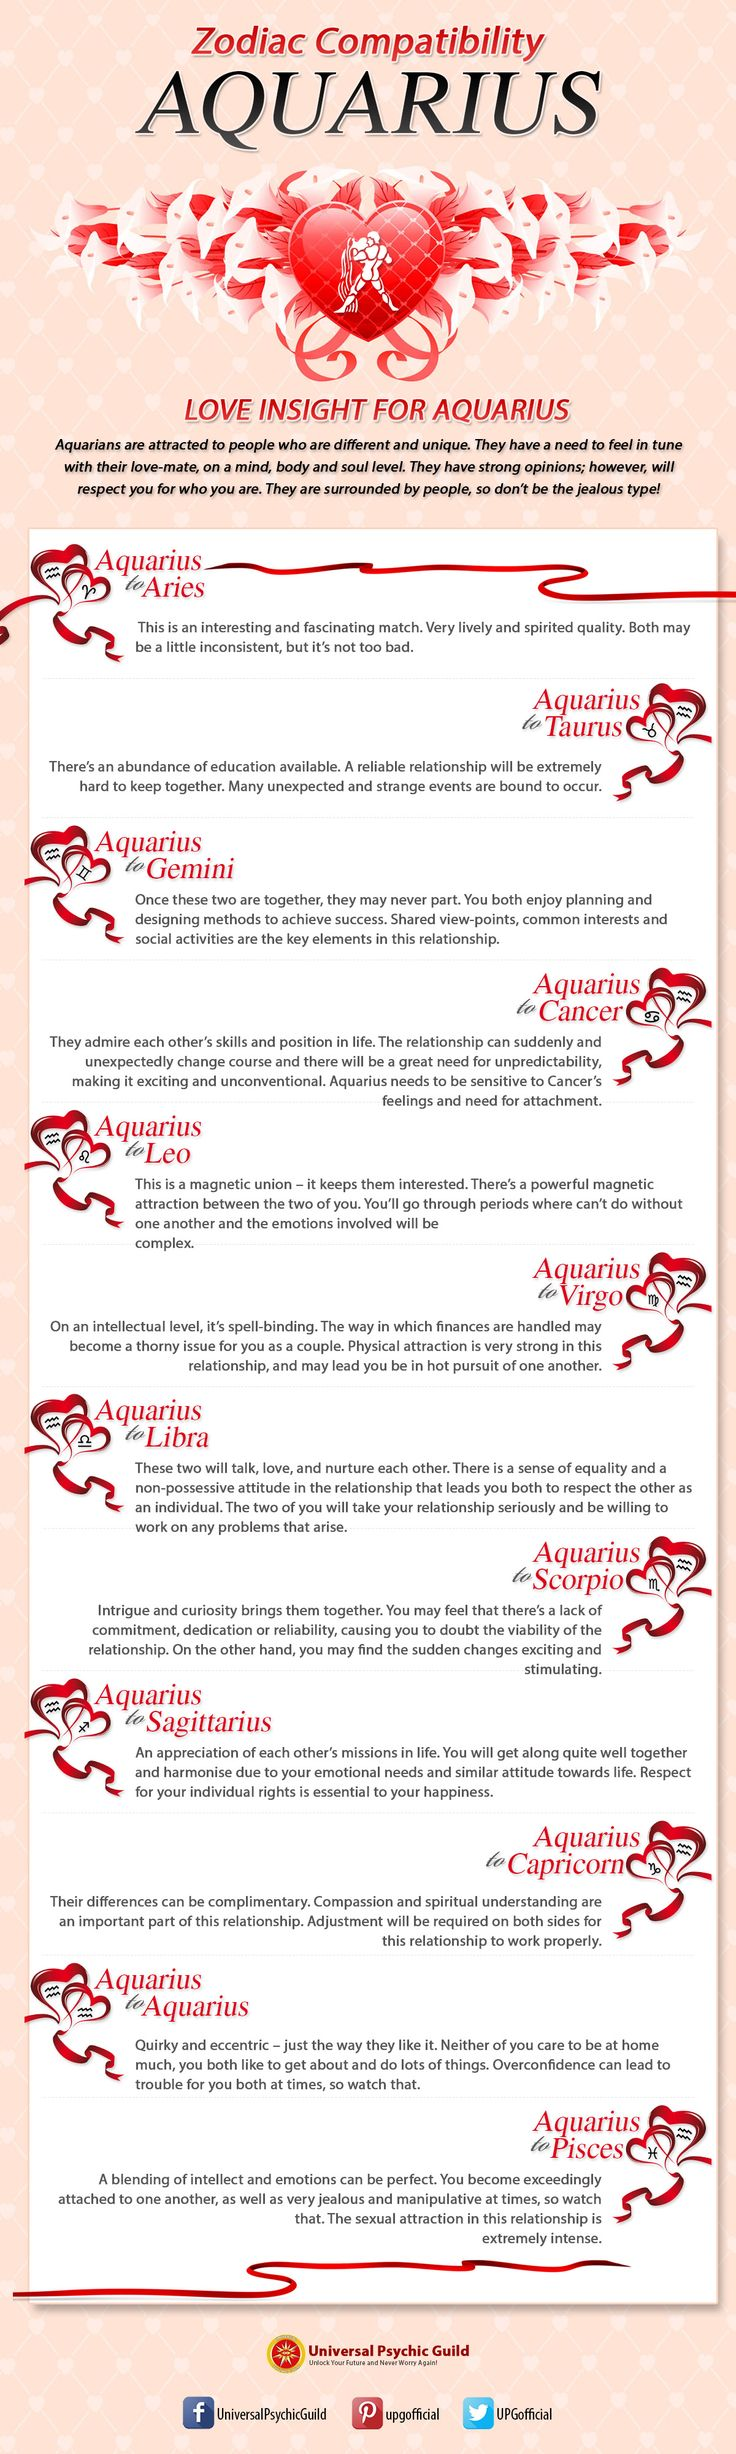 66 best zodiac signs love compatibility images on pinterest infographic zodiac compatibility for aquarius read more at http nvjuhfo Image collections